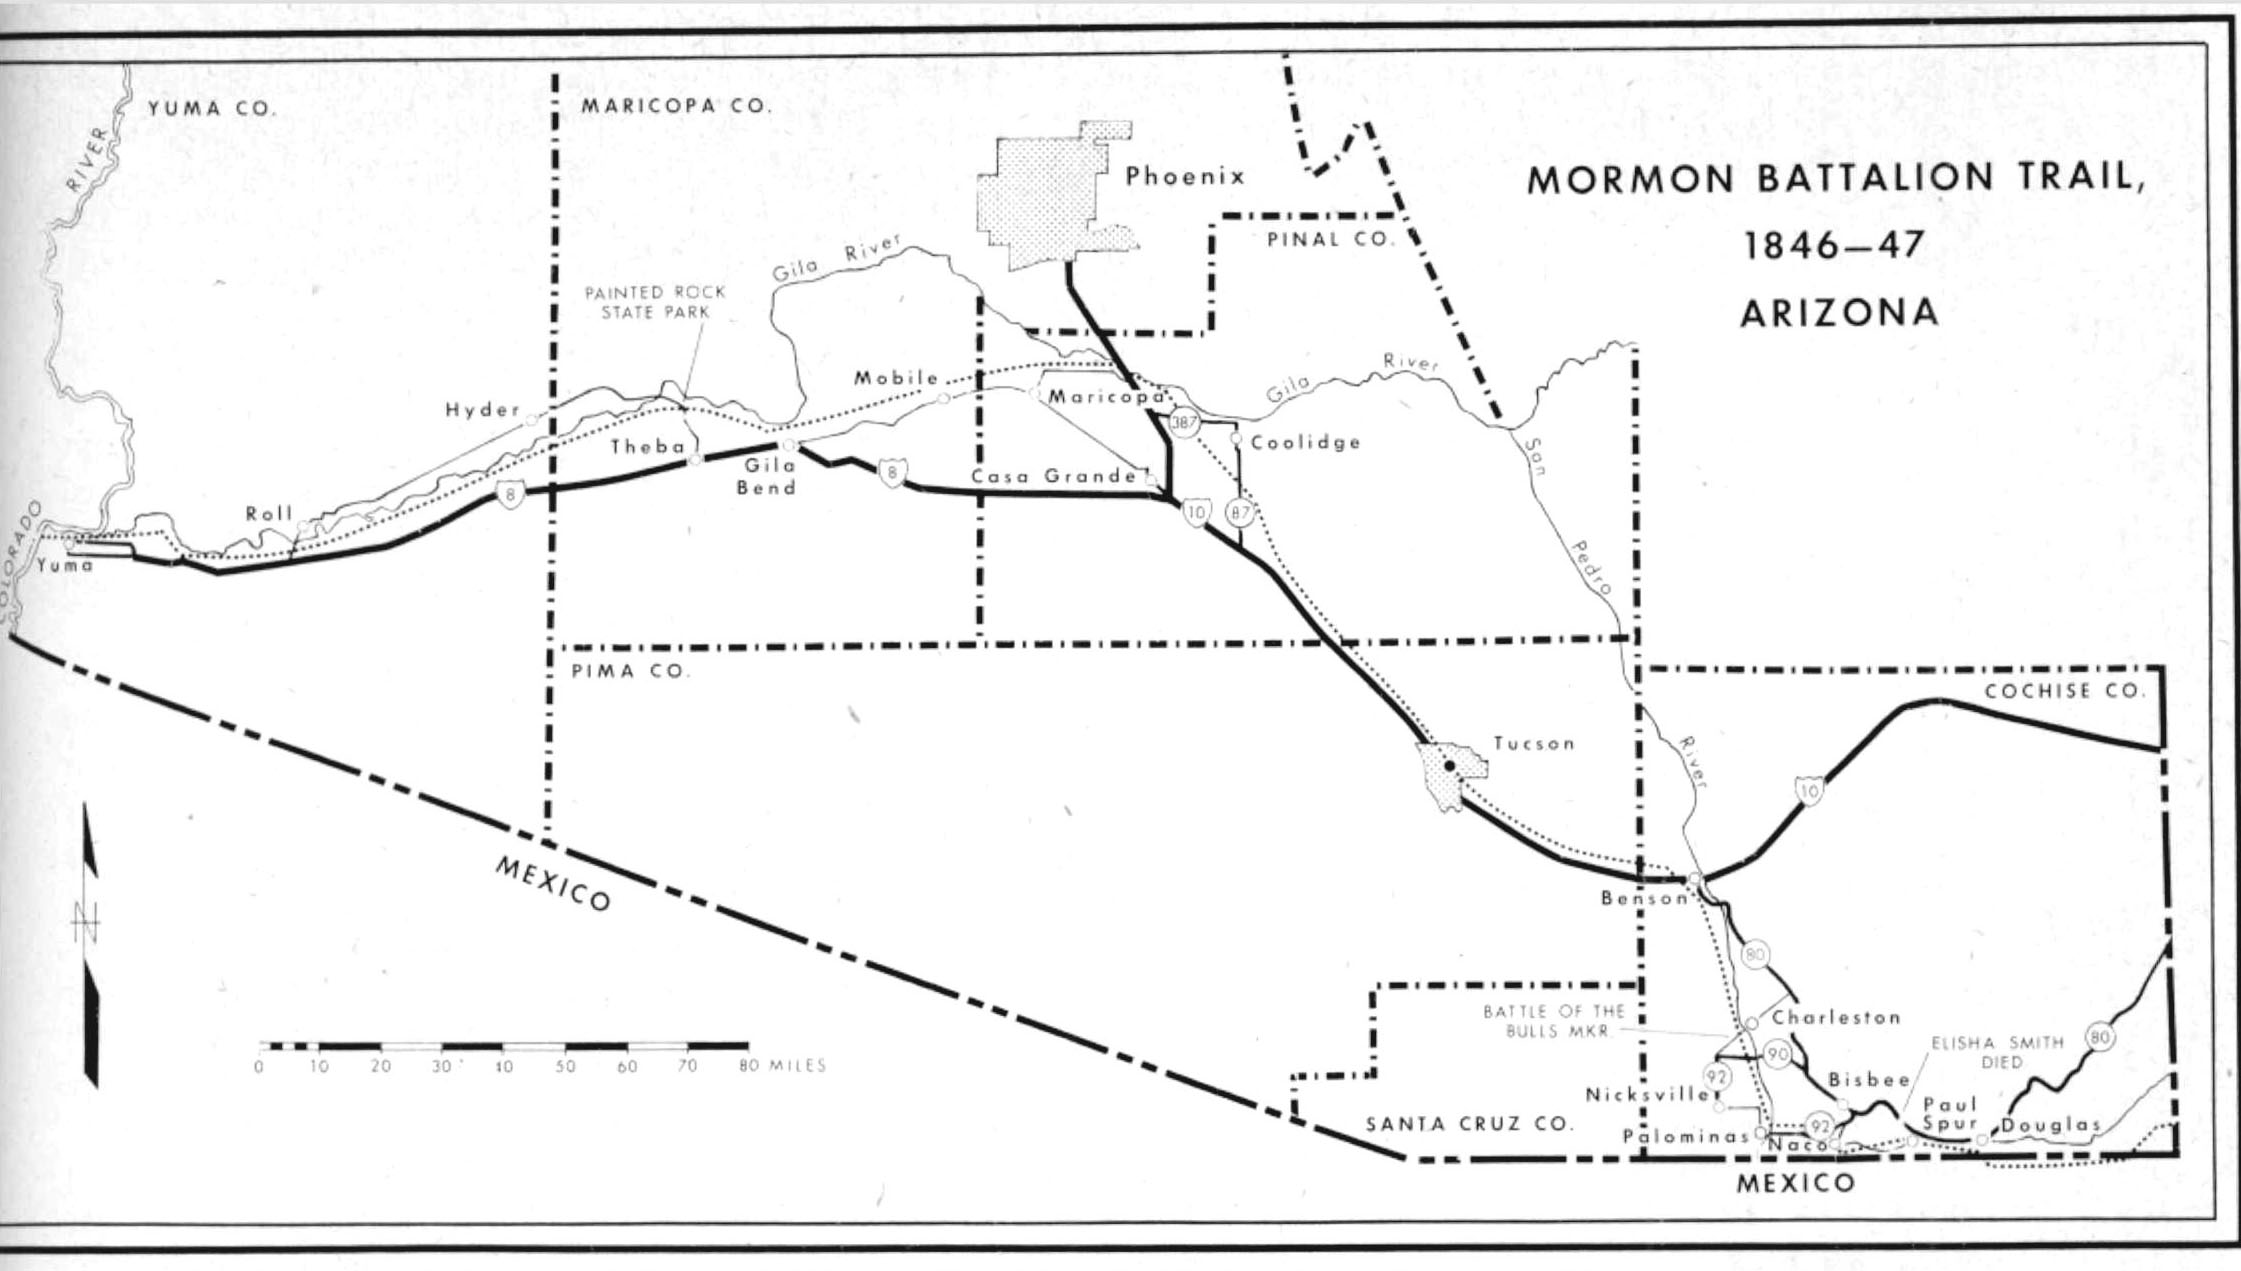 Mormon Battalion's march across Arizona. Small dotted line marks their route